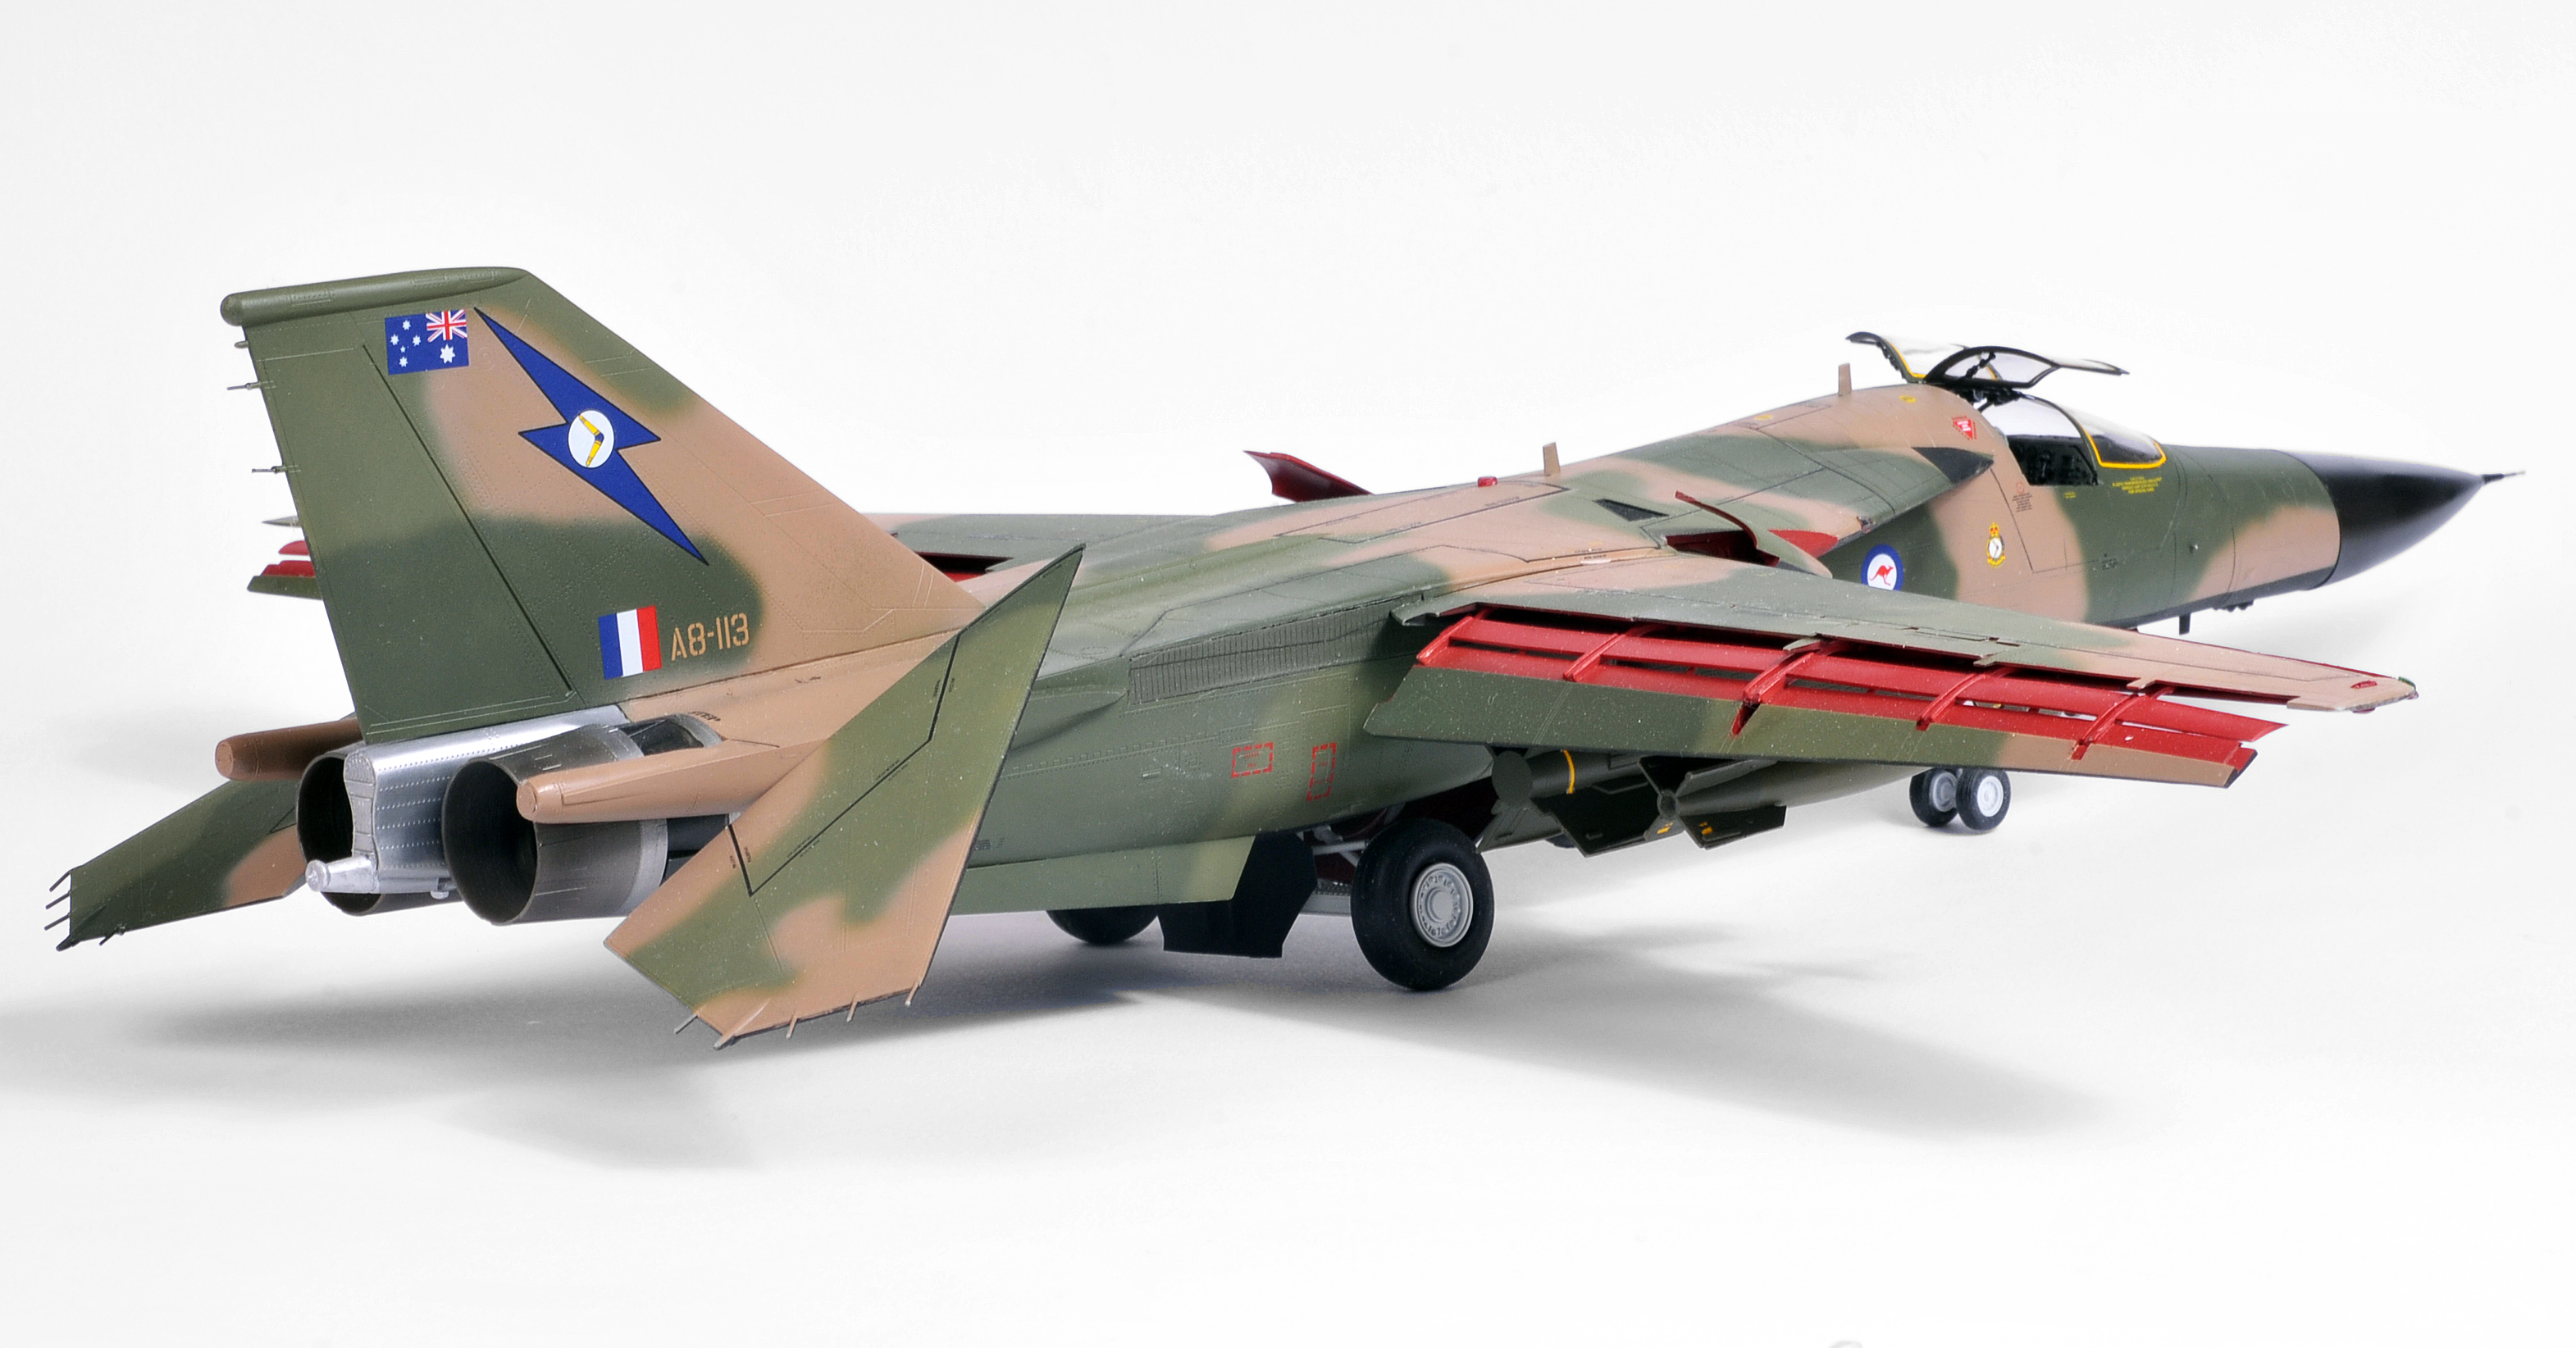 Hobby Boss 1/48 scale F-111C by Mick Evans: Image